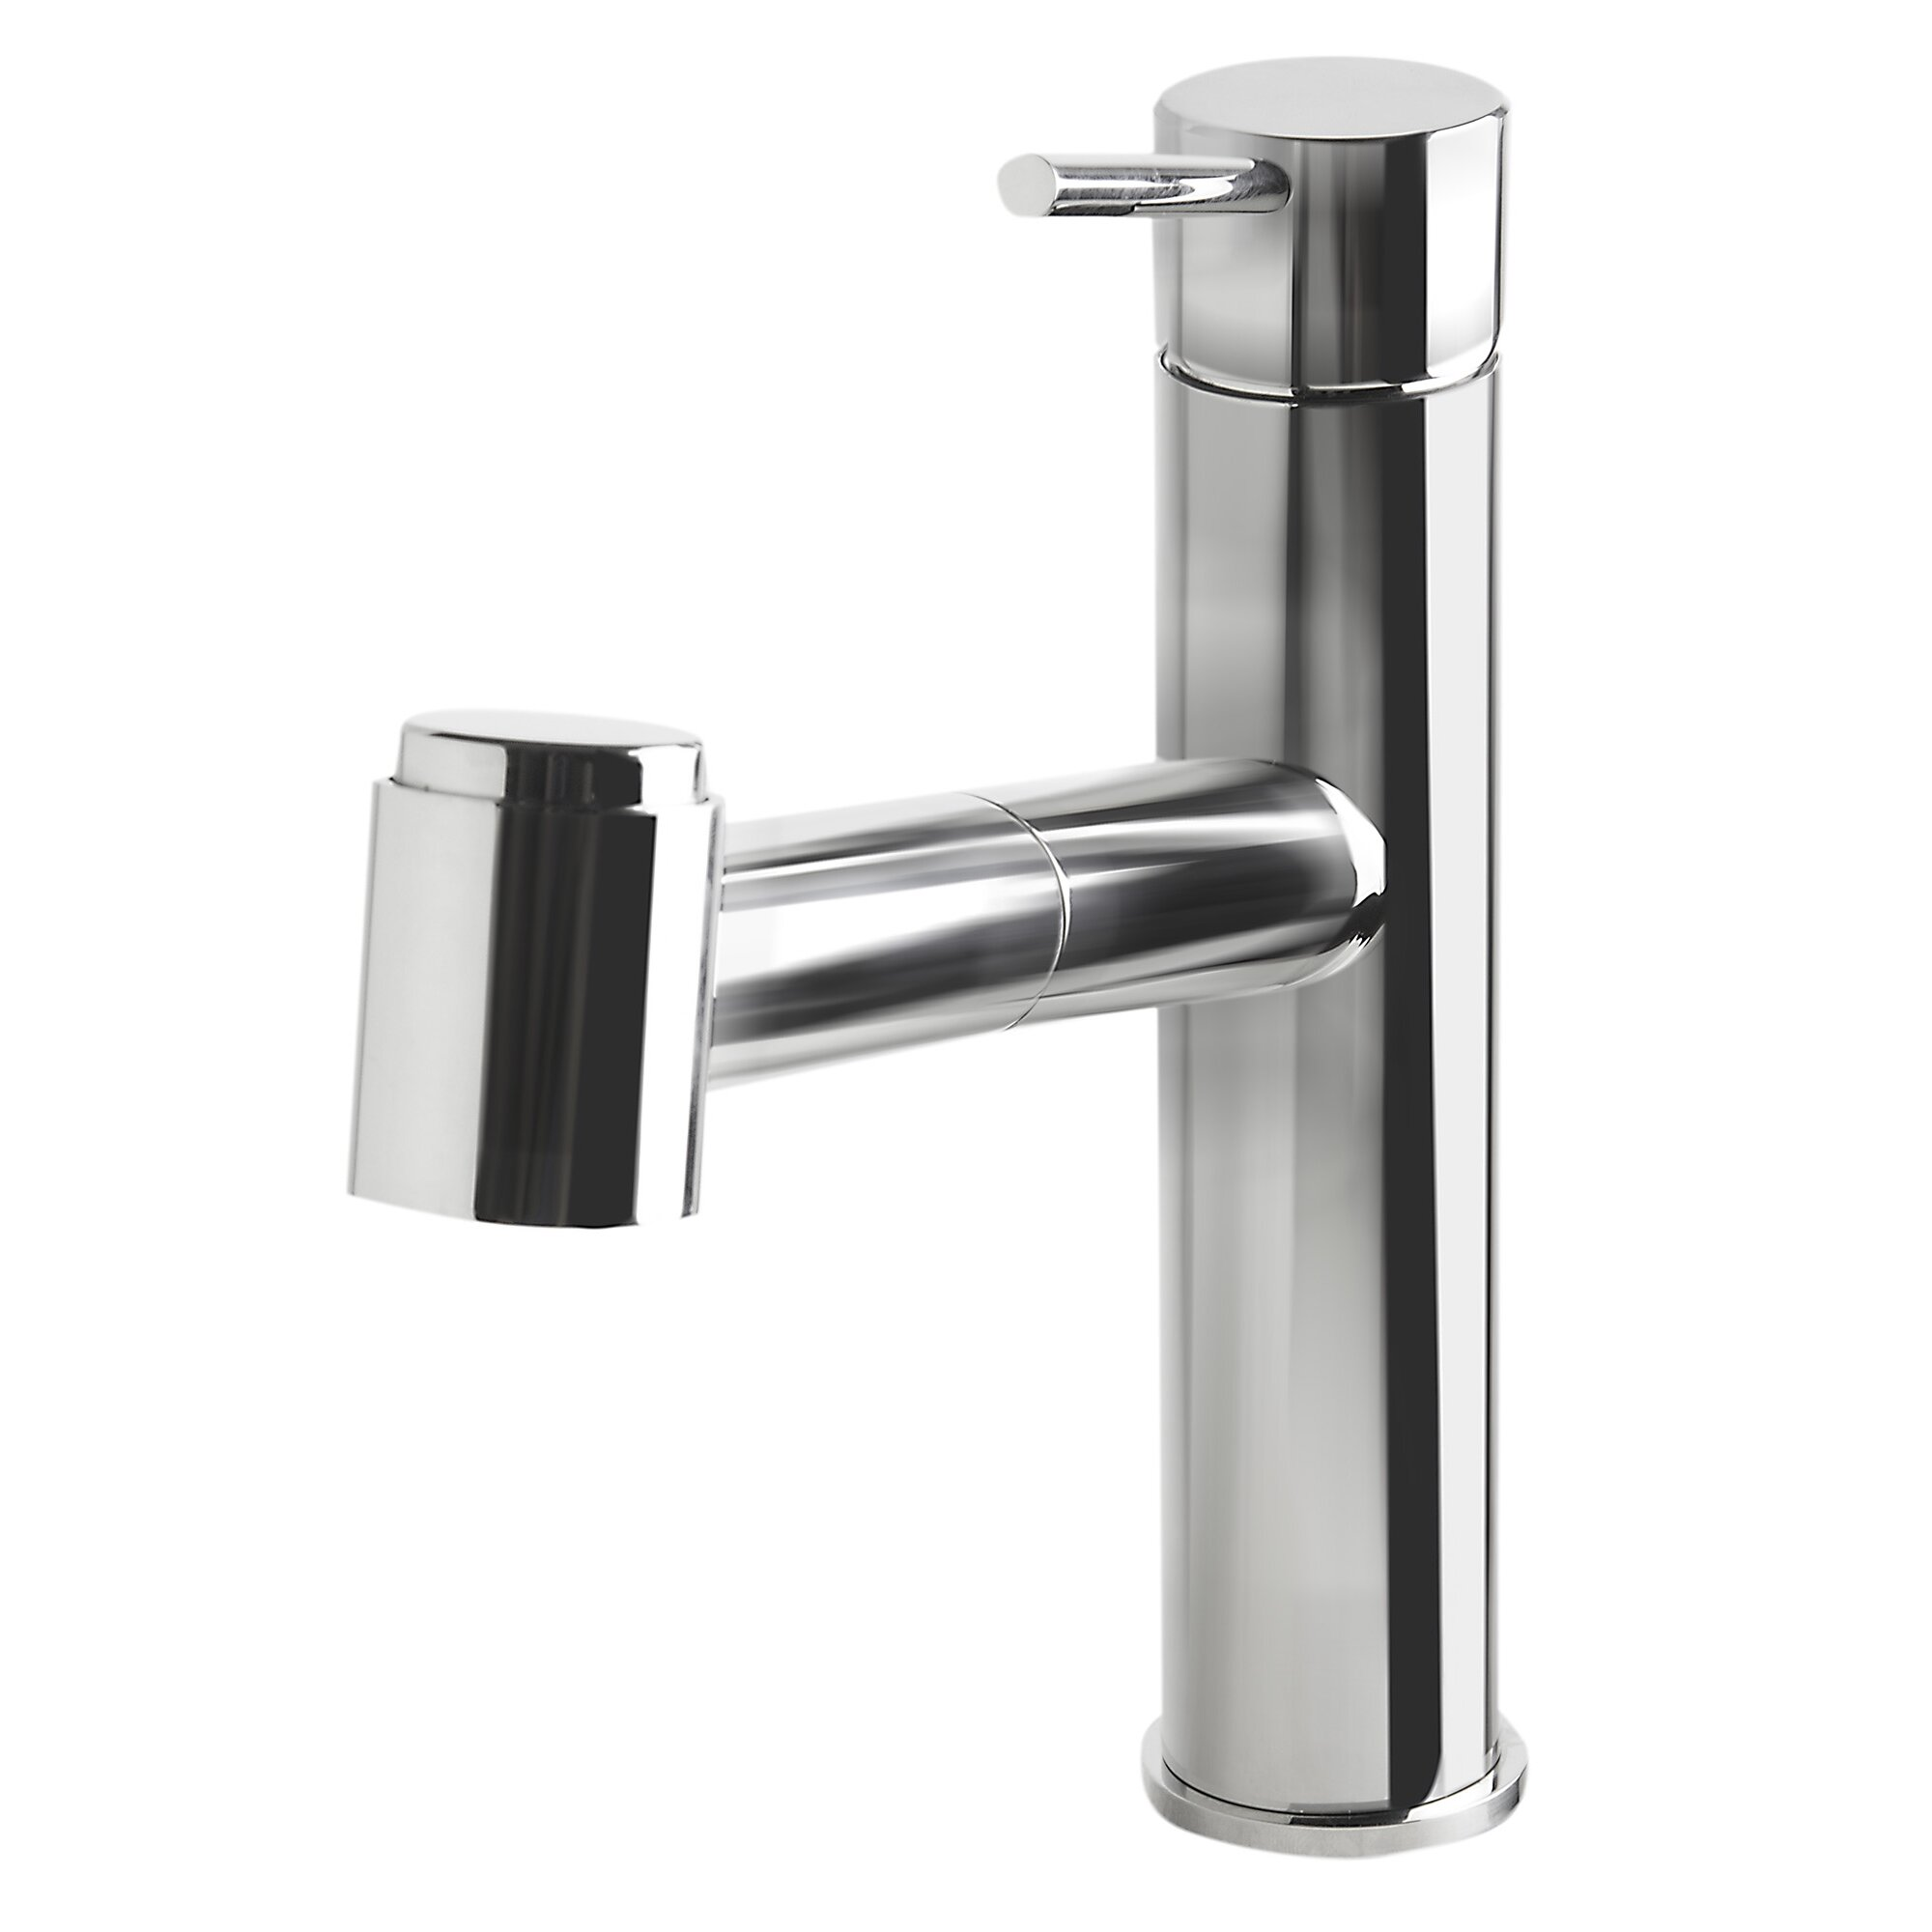 Pull Out Spray Kitchen Faucets Alfi Brand Kitchen Faucet With Pull Out Spray Reviews Wayfair